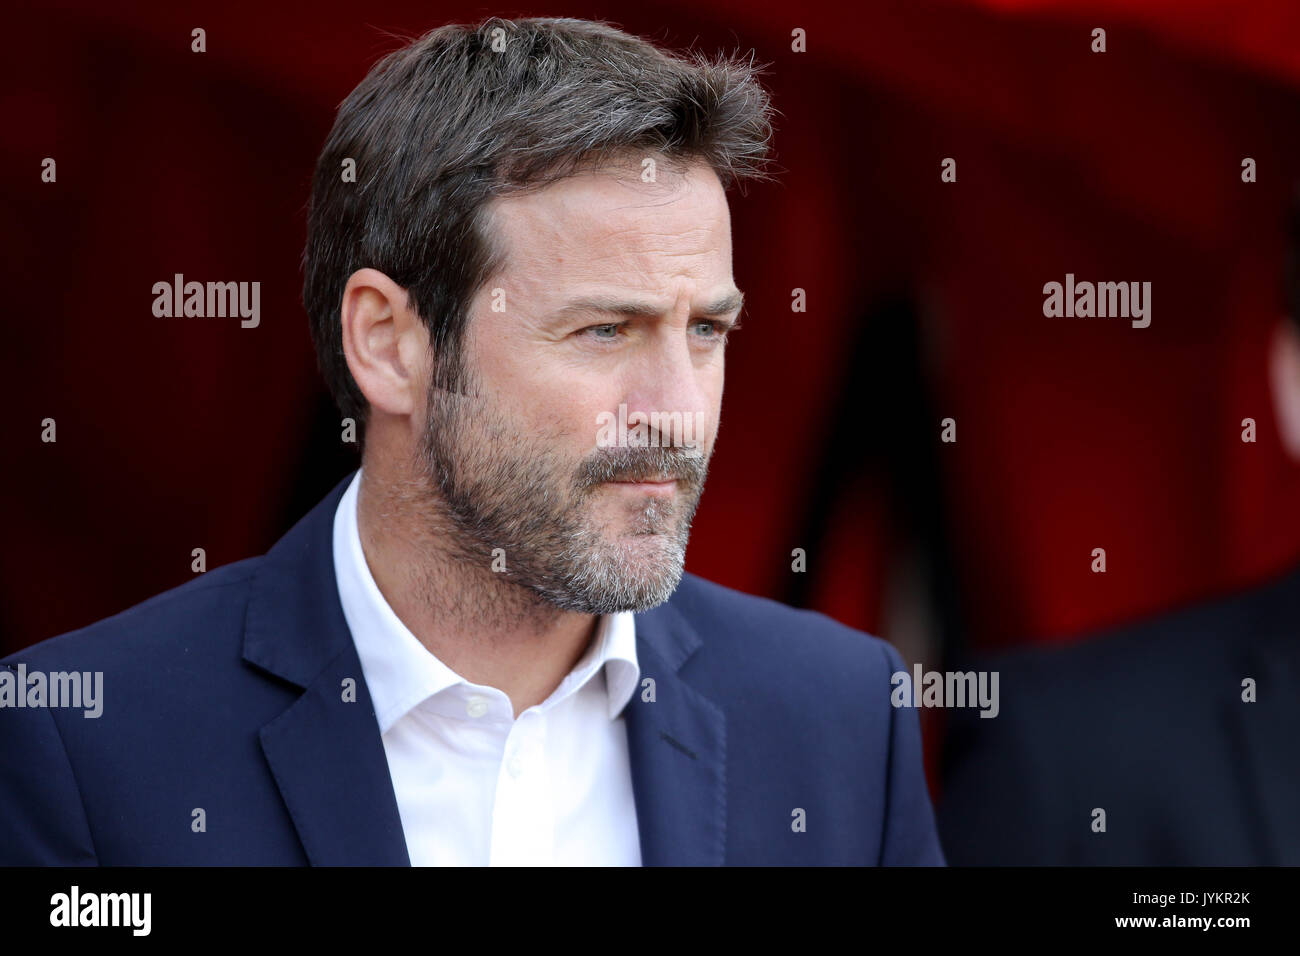 Christiansen Stock s & Christiansen Stock Alamy